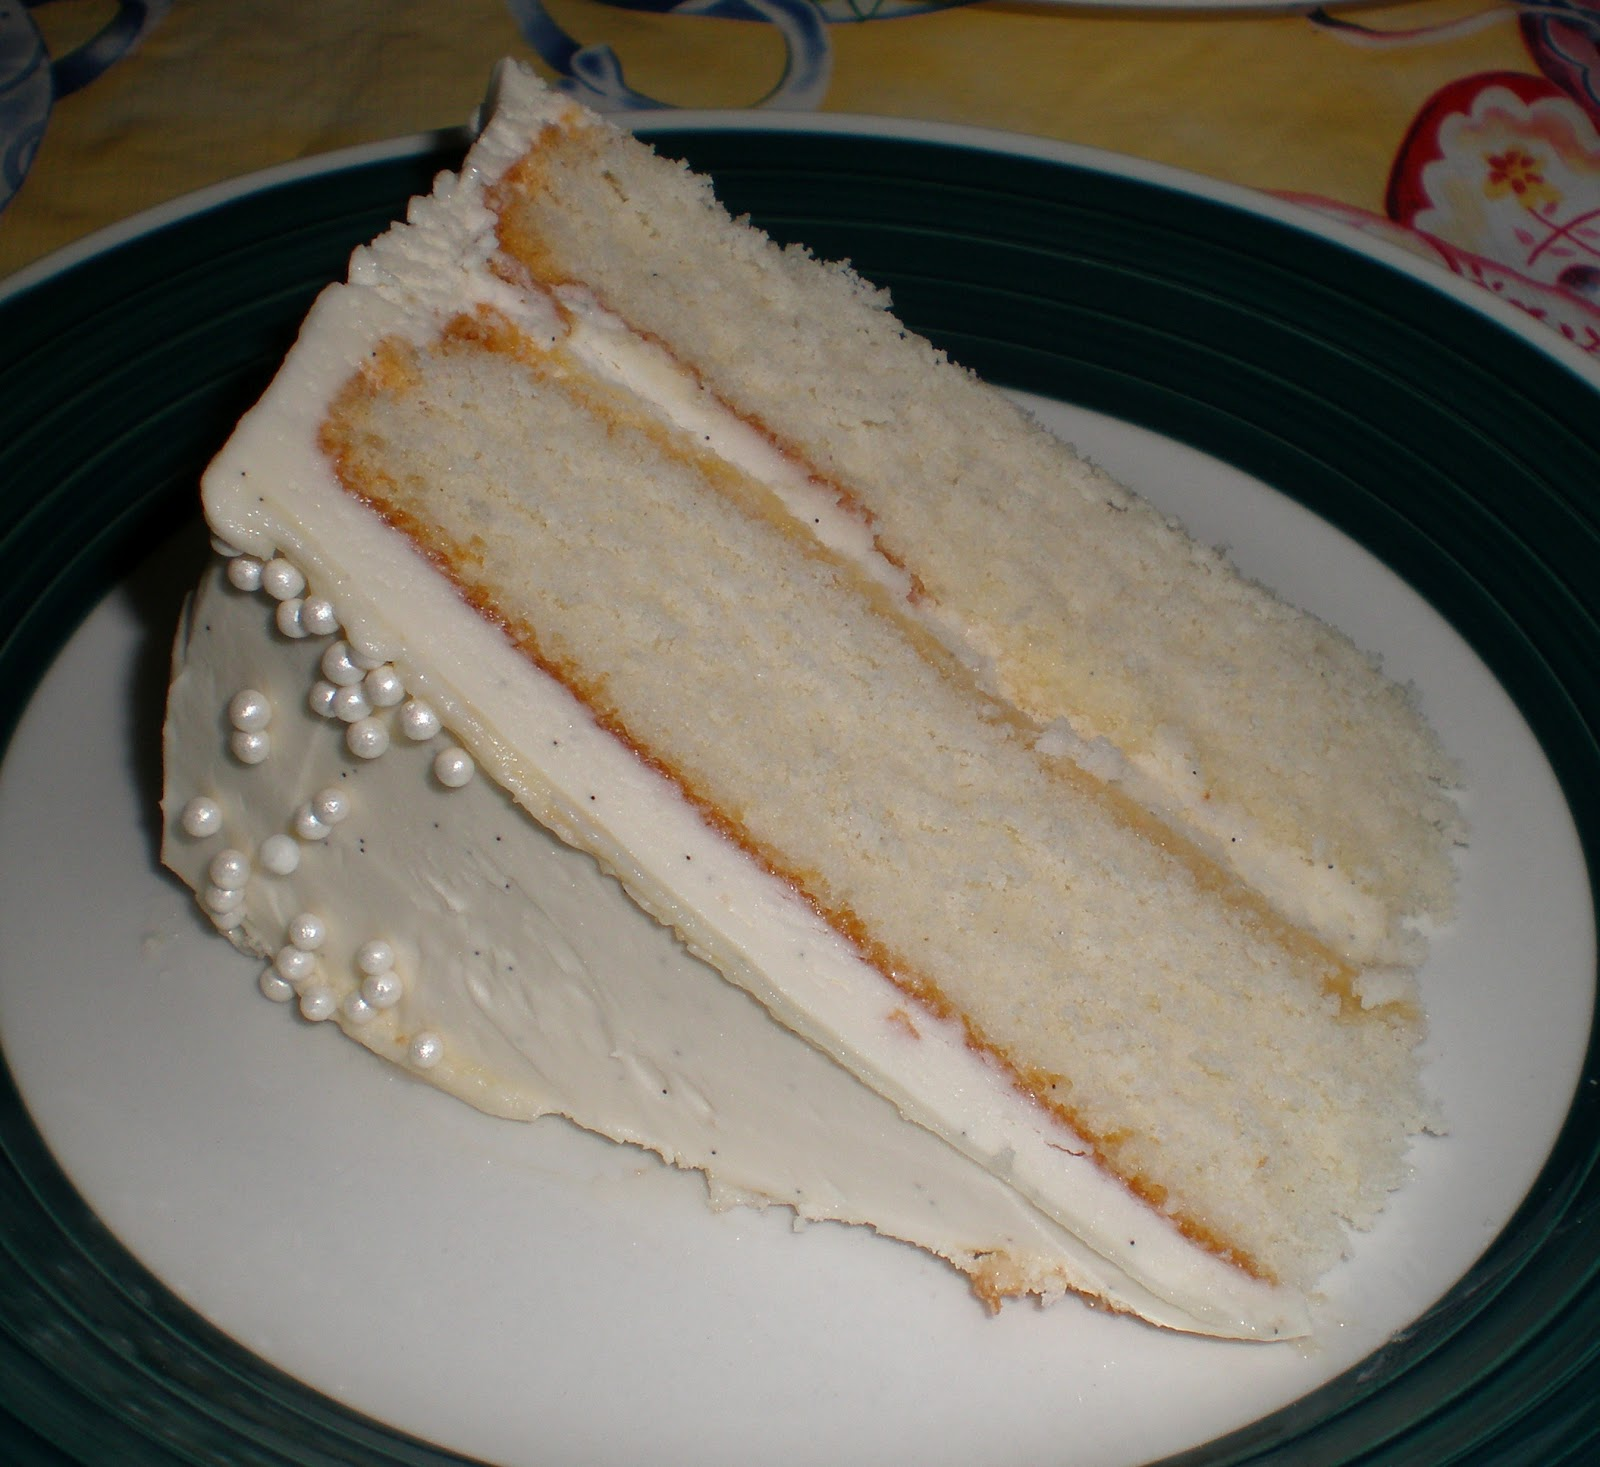 Images Of Vanilla Cake : Sugar-Coated Delights: Fluffy Vanilla Cake with Whipped ...